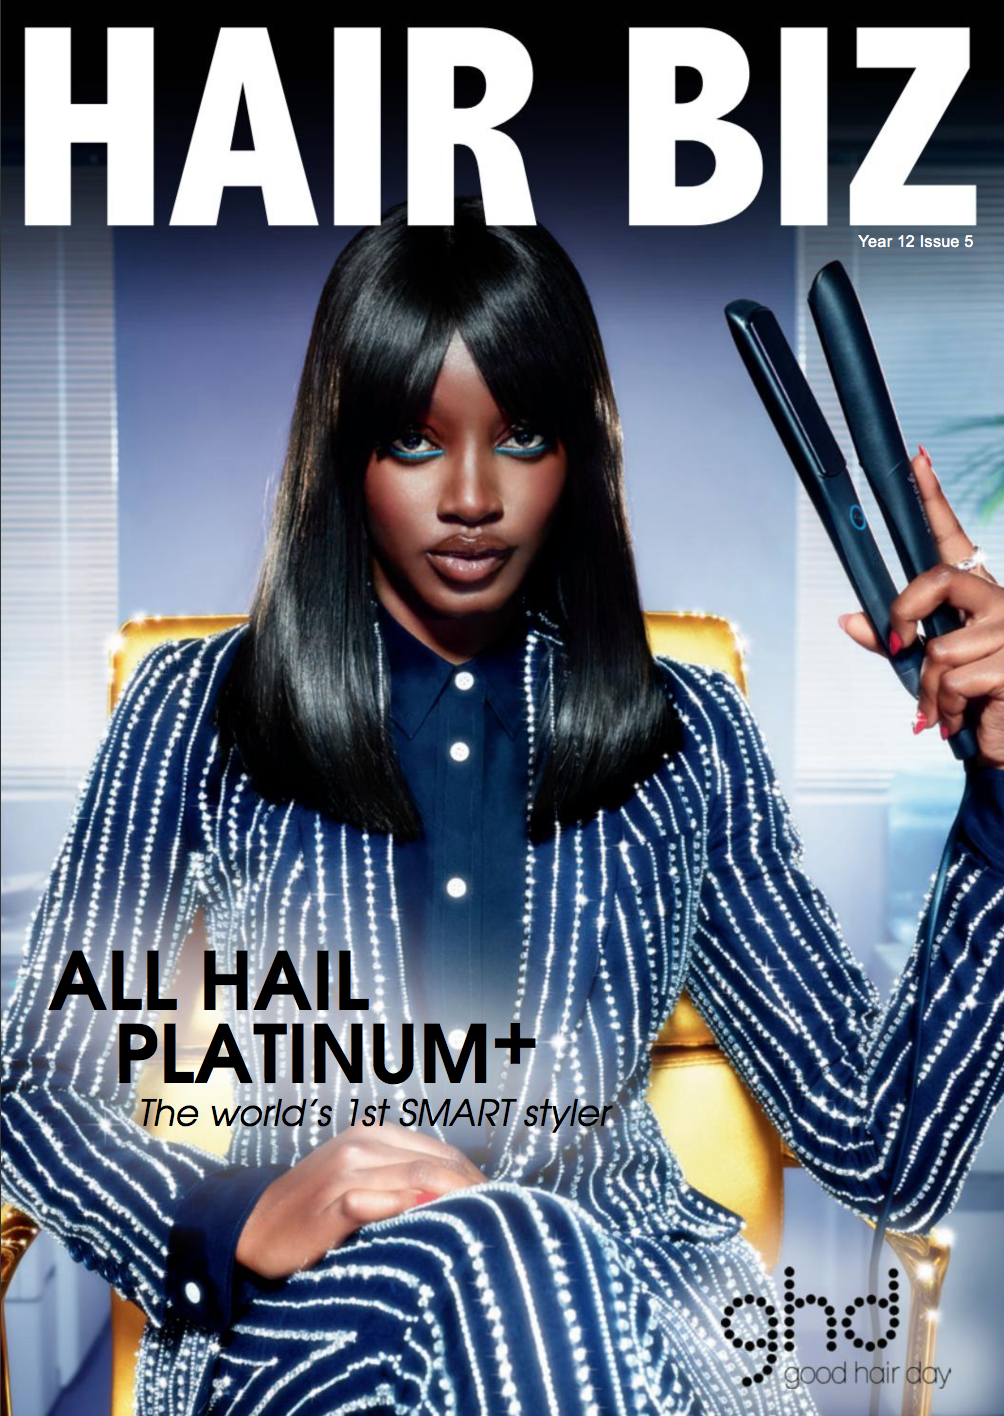 Hair Biz - Yr 12 Issue 5 - September 2018 cover.png